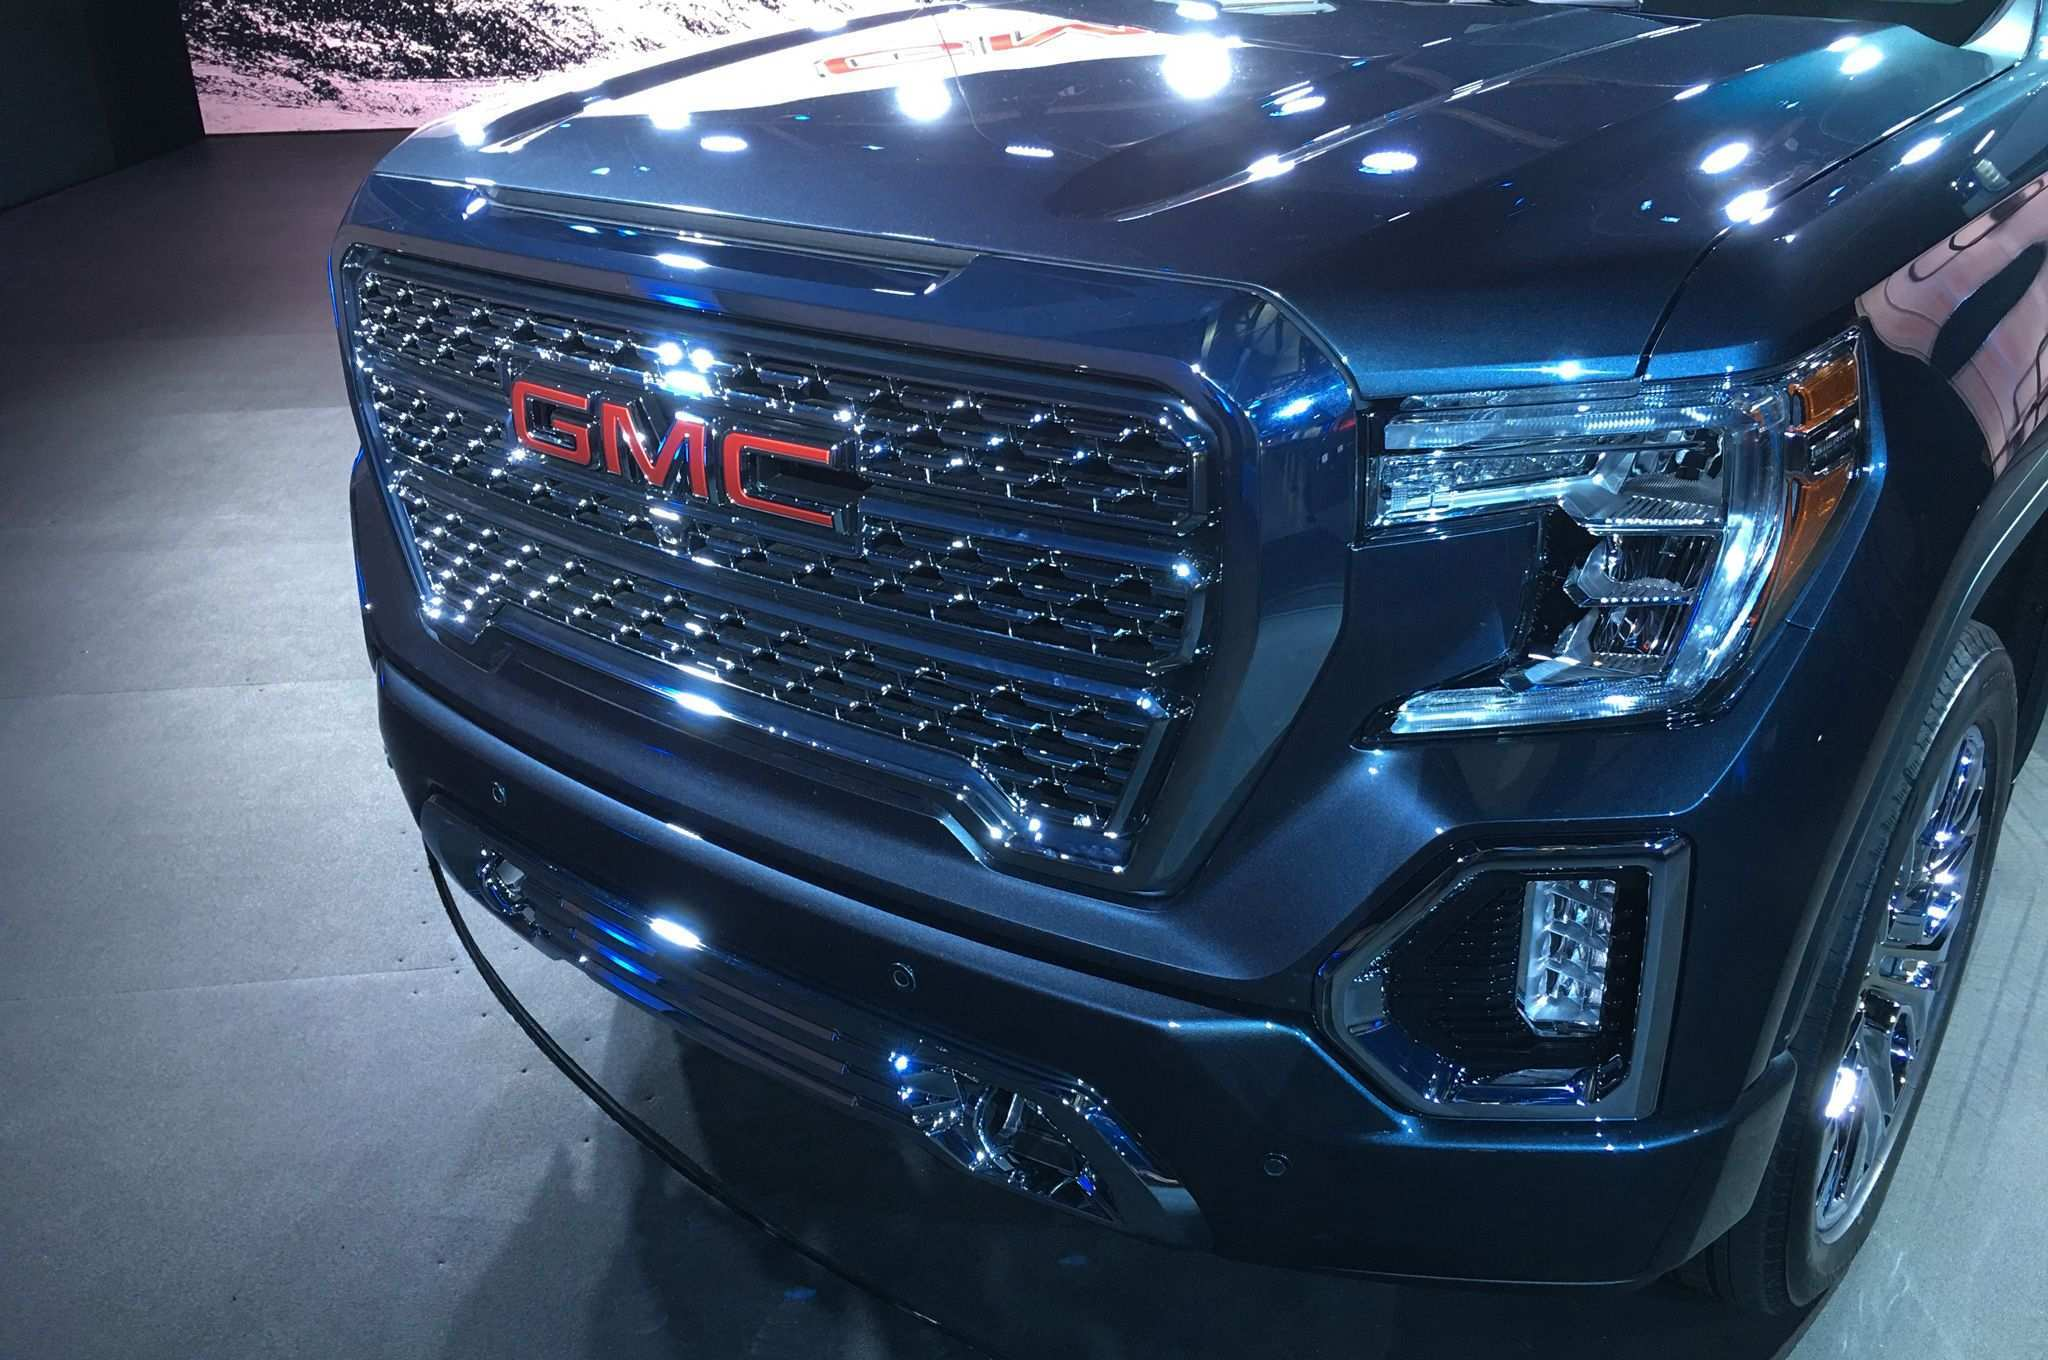 37 Concept of 2019 Gmc 3 0 Diesel Specs Research New for 2019 Gmc 3 0 Diesel Specs